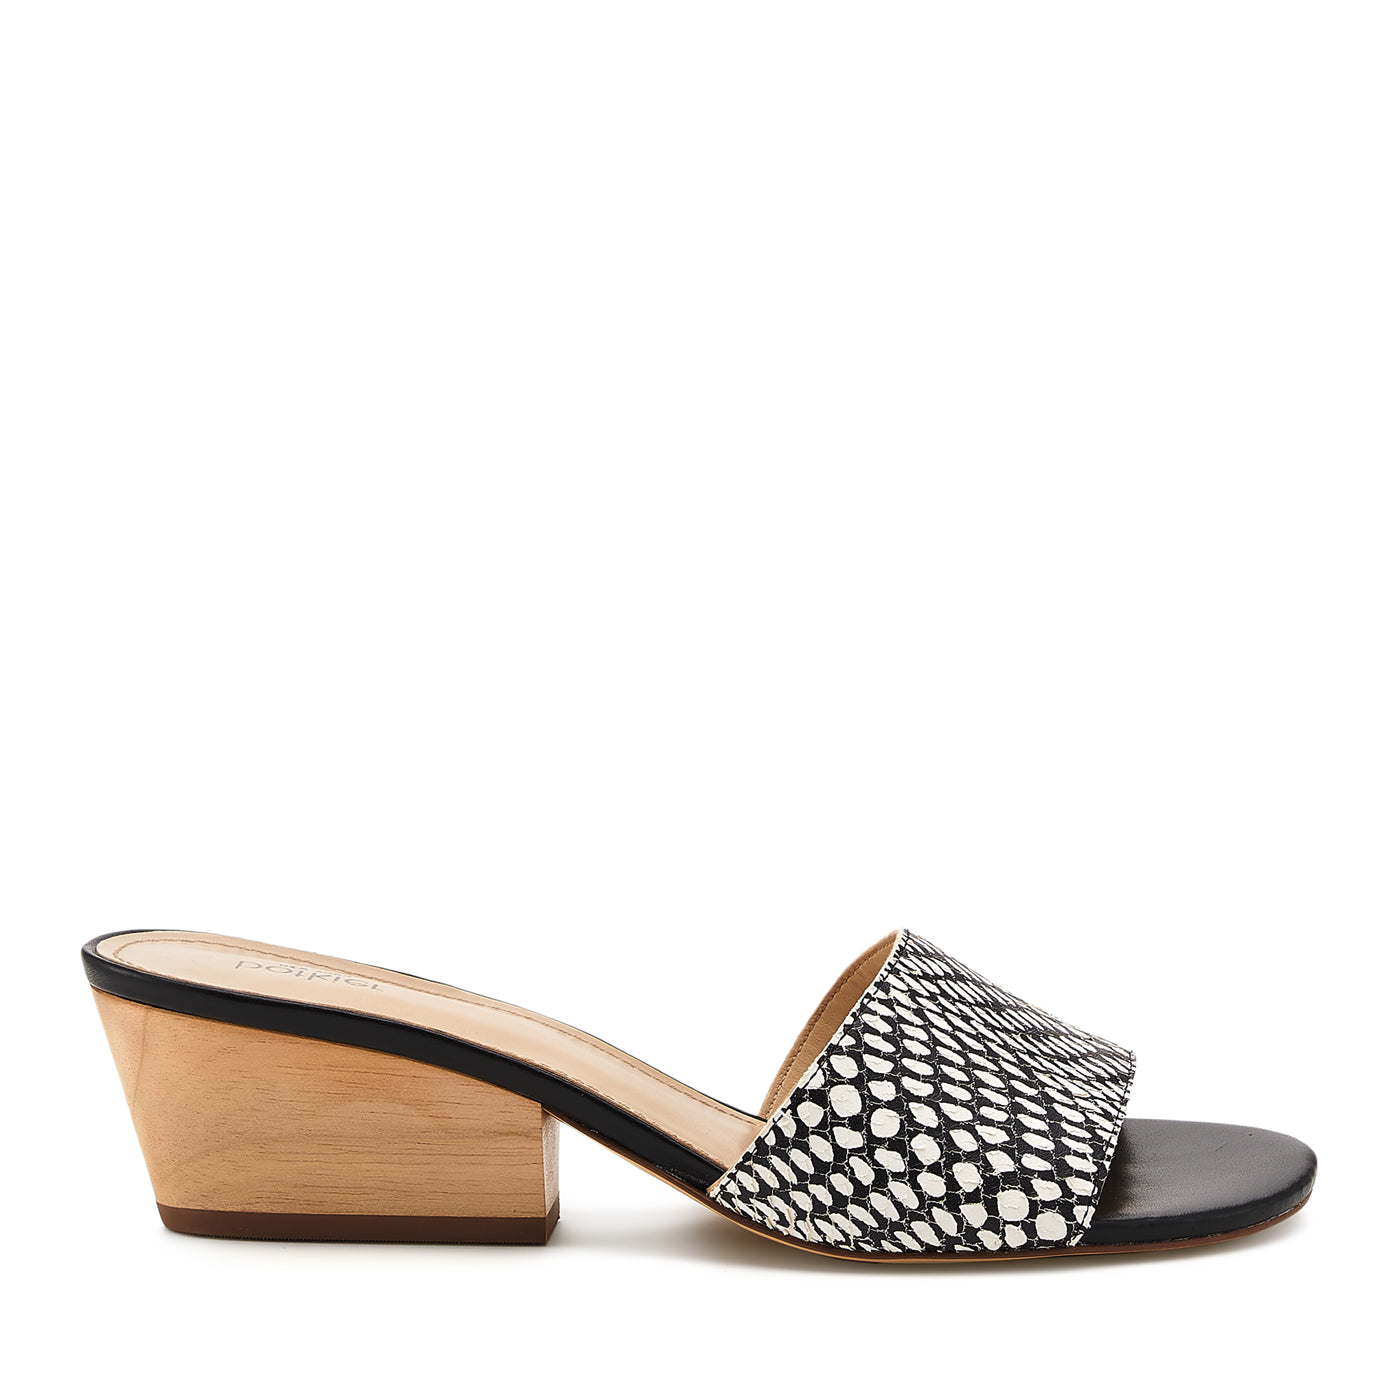 botkier carlie mule black white snake side view